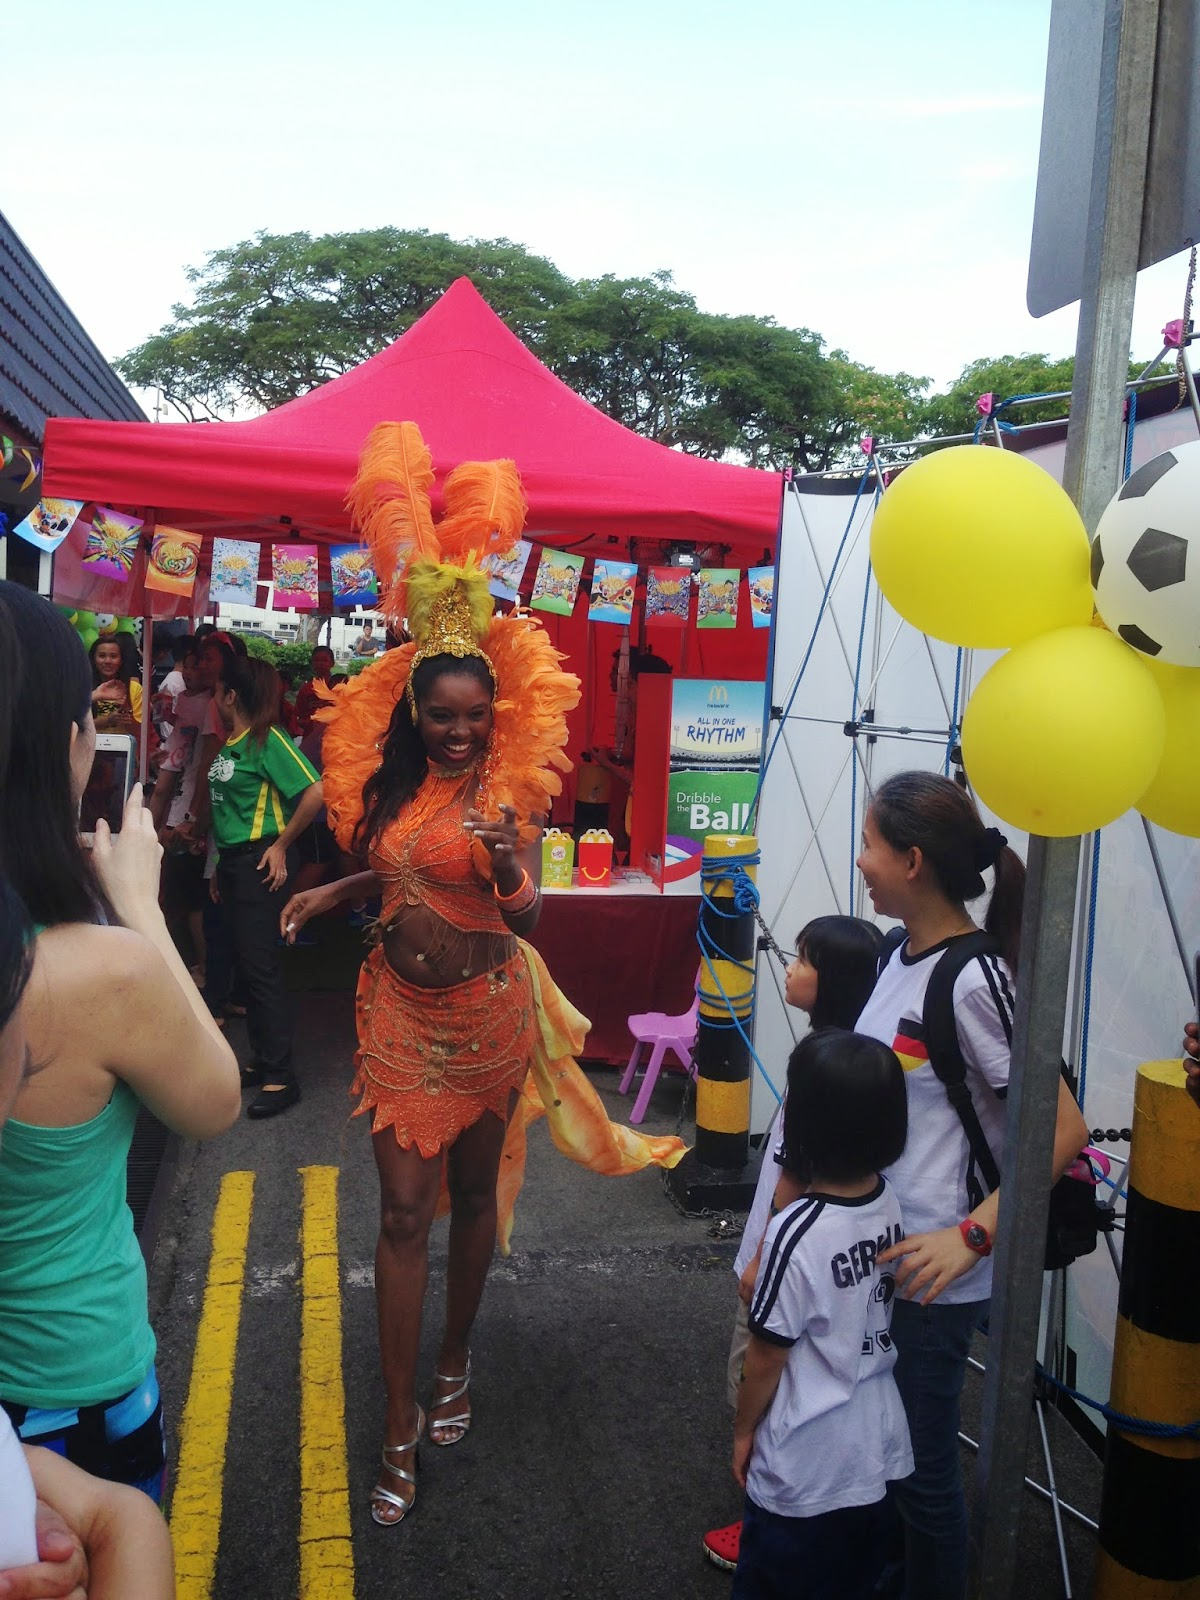 FIFA World Cup Mcdonald's Carnival Hot Dancer Lady